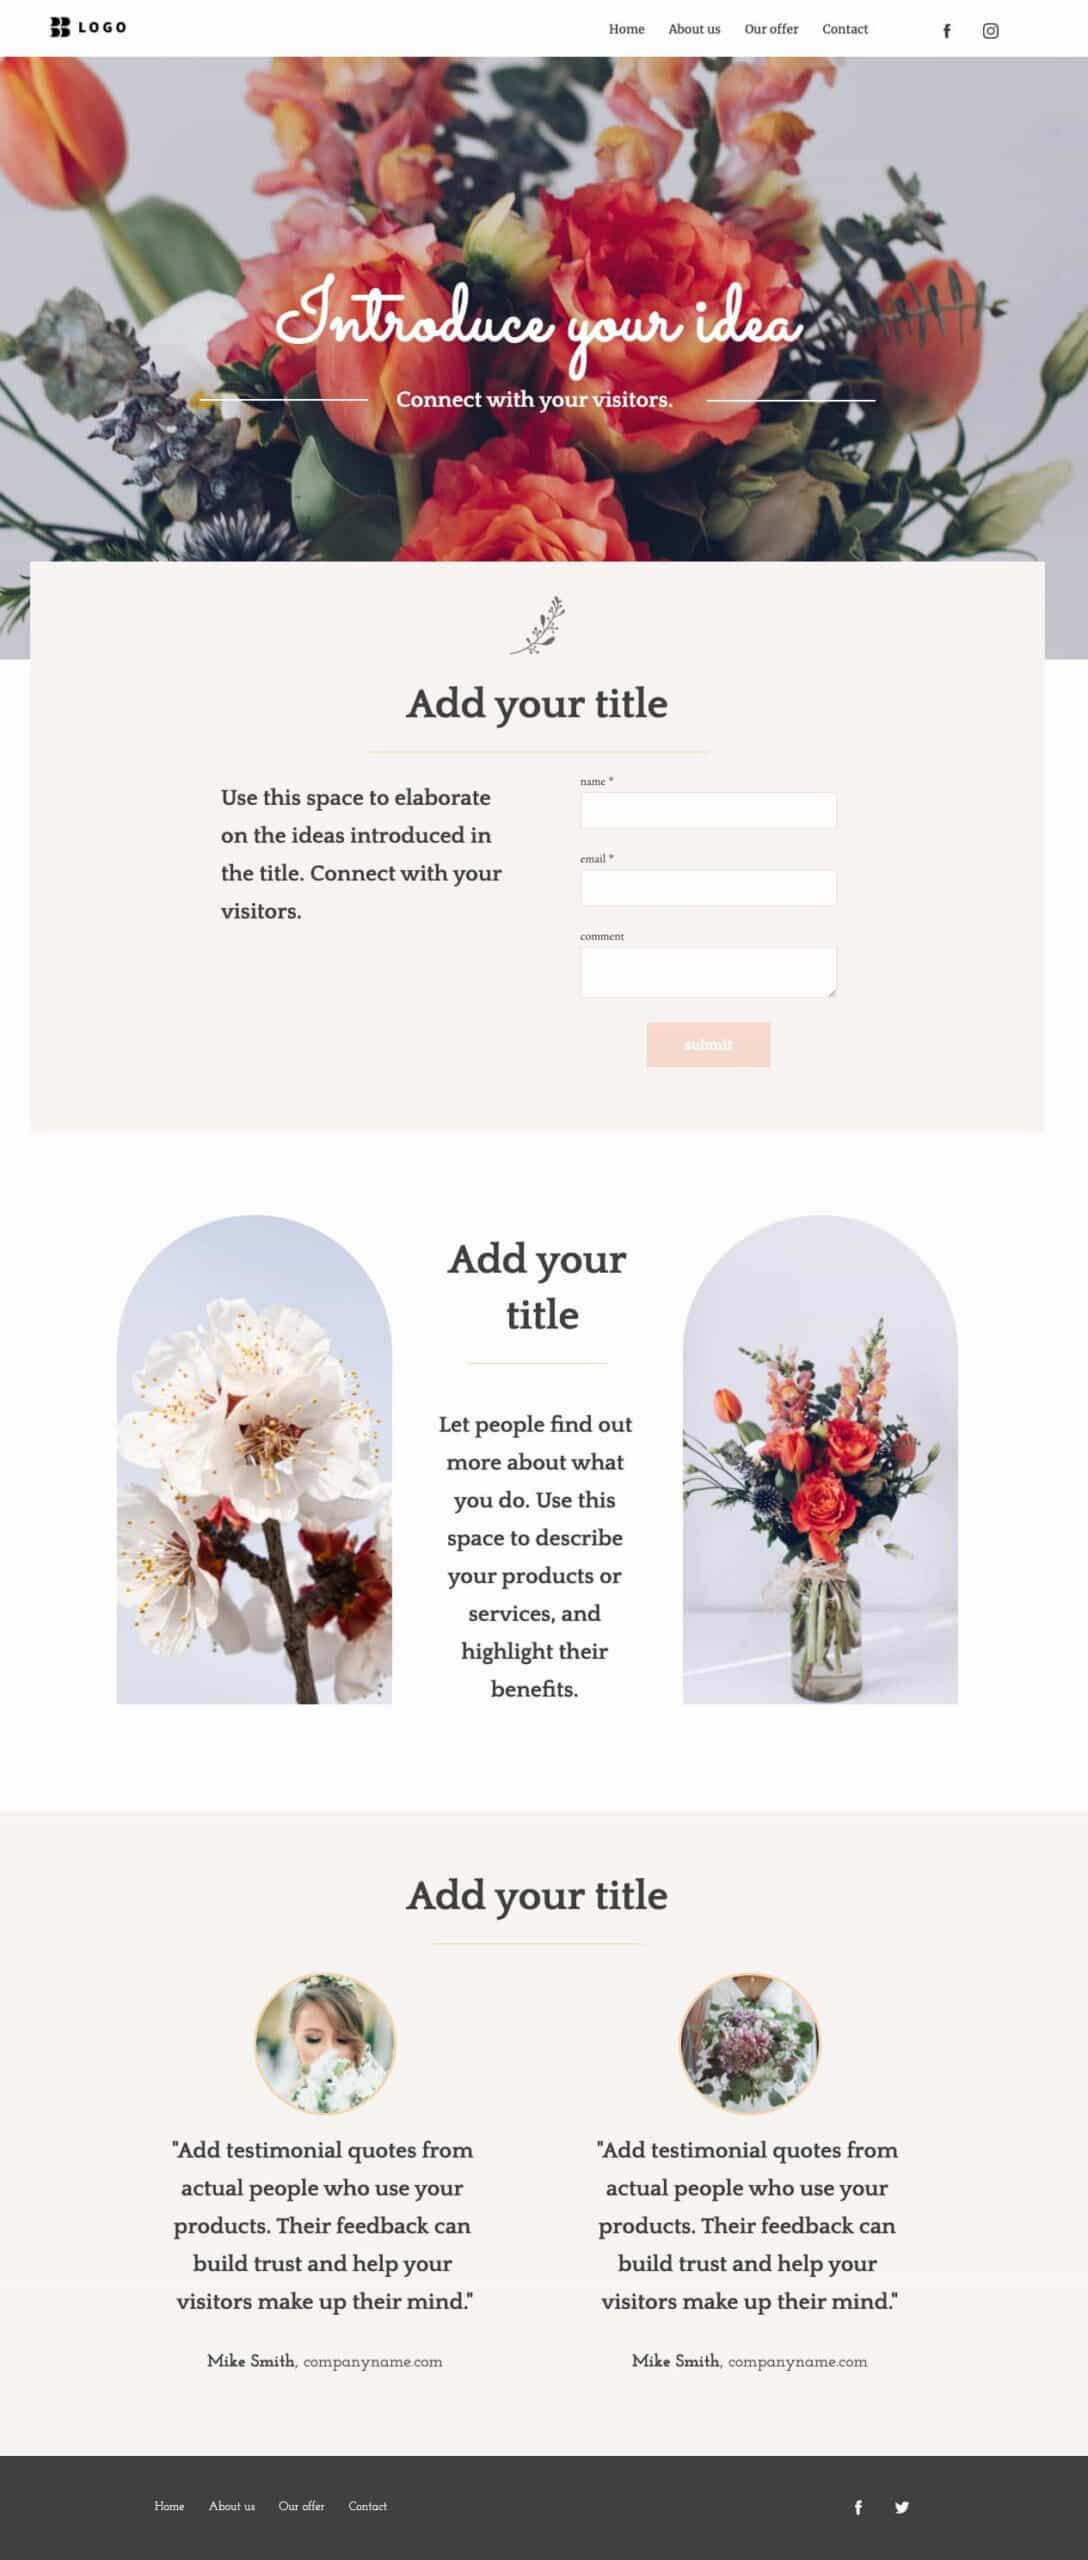 Homepage example from one of the GetResponse website templates.